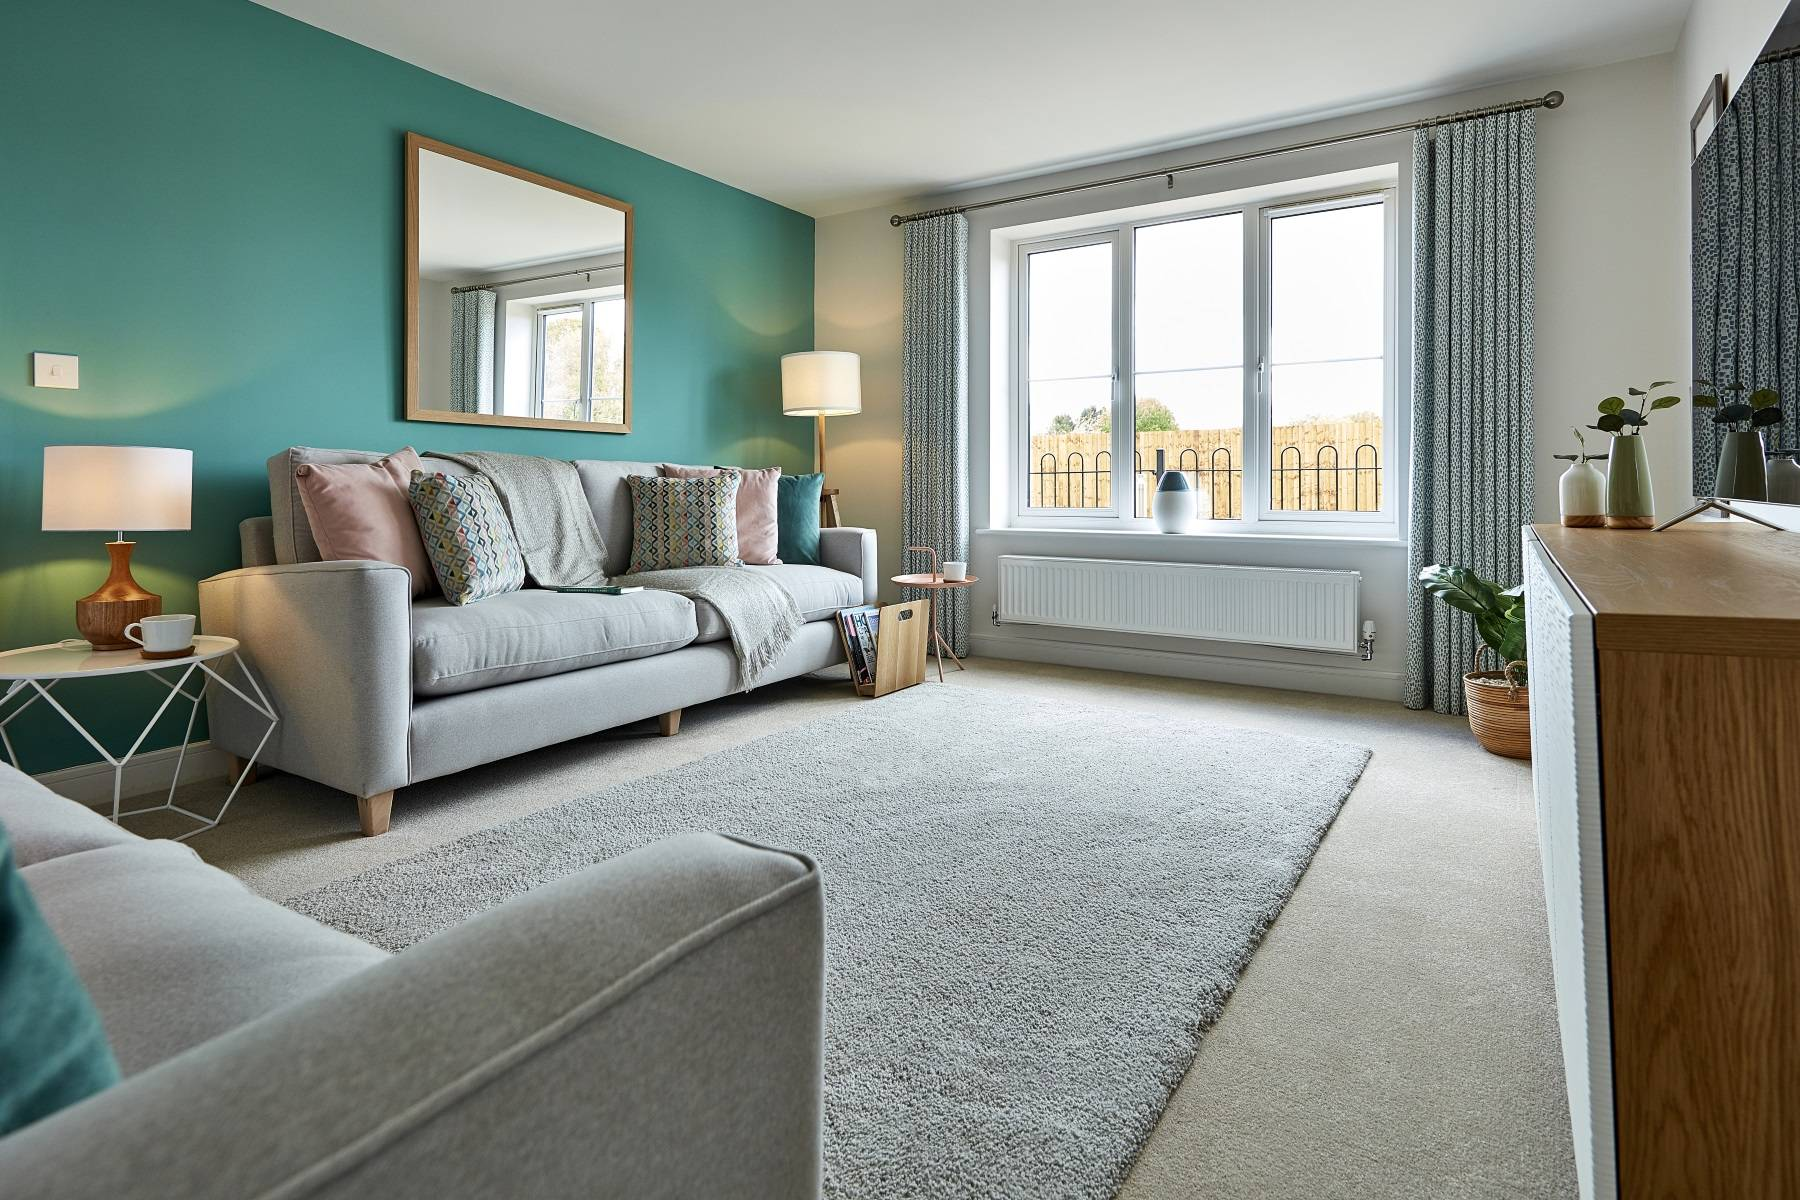 TW Exeter - Copleston Heights - Midford example living room